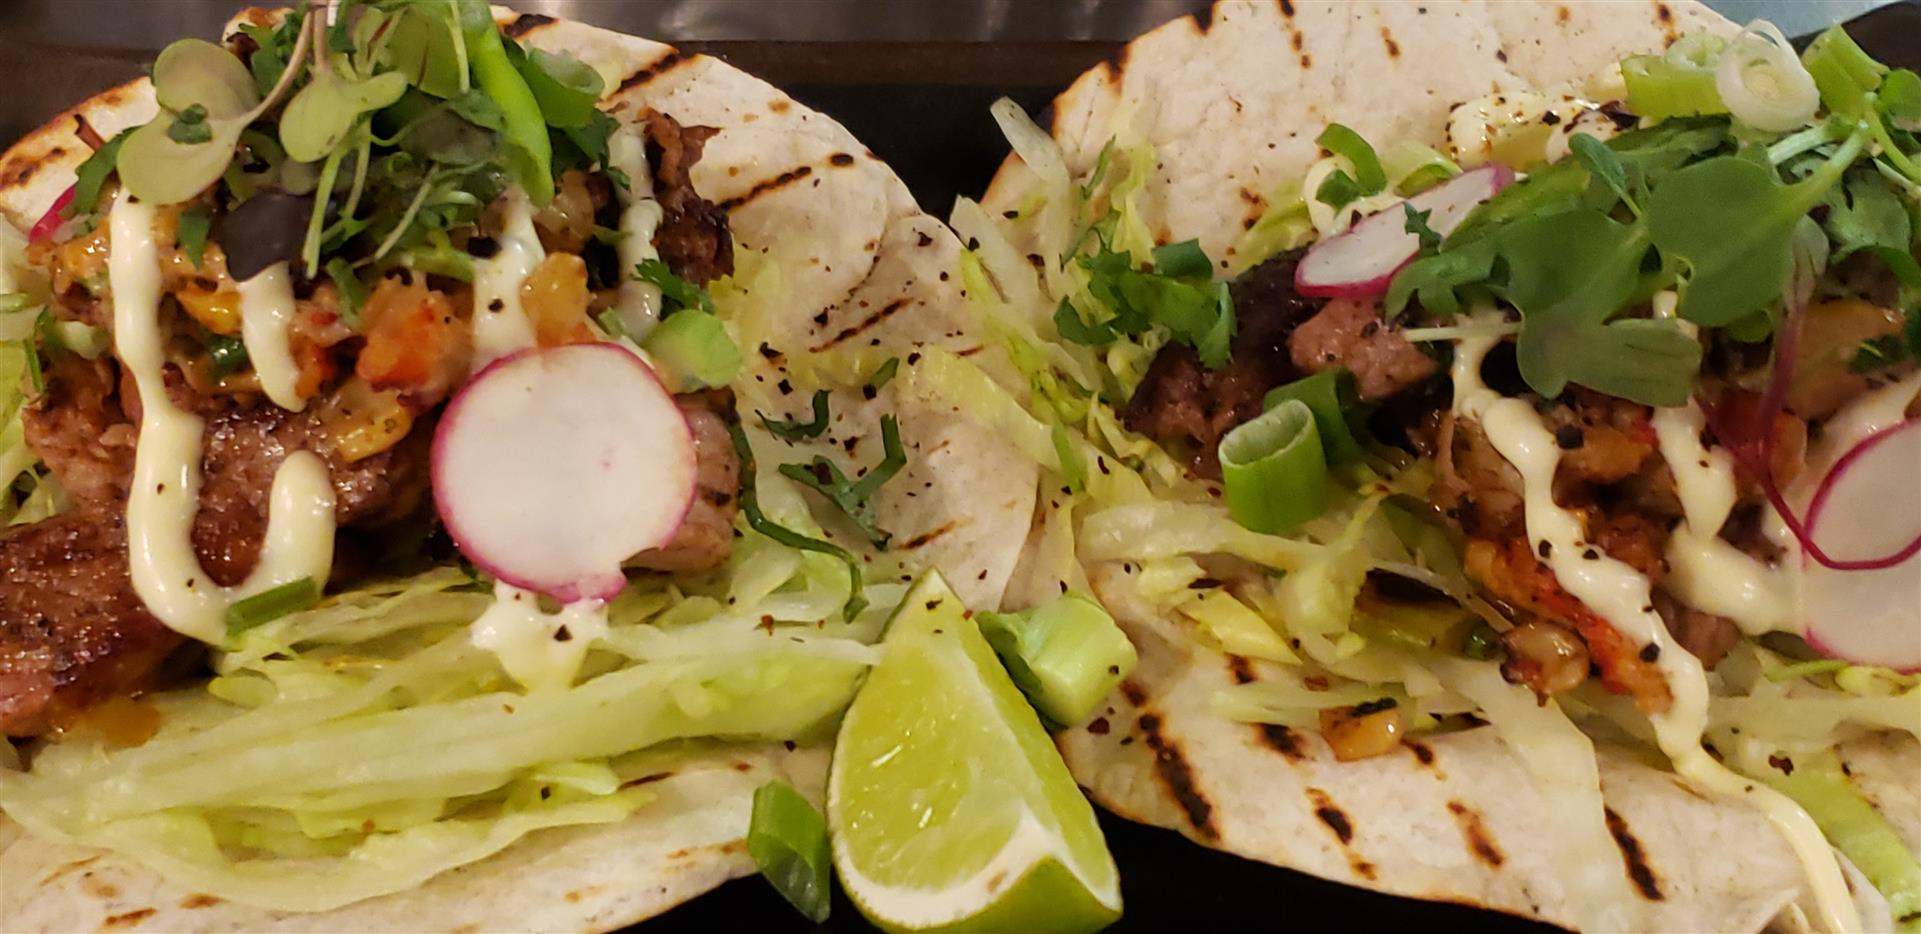 two tacos with meat, radish, scallions and lettuce on flour tortillas